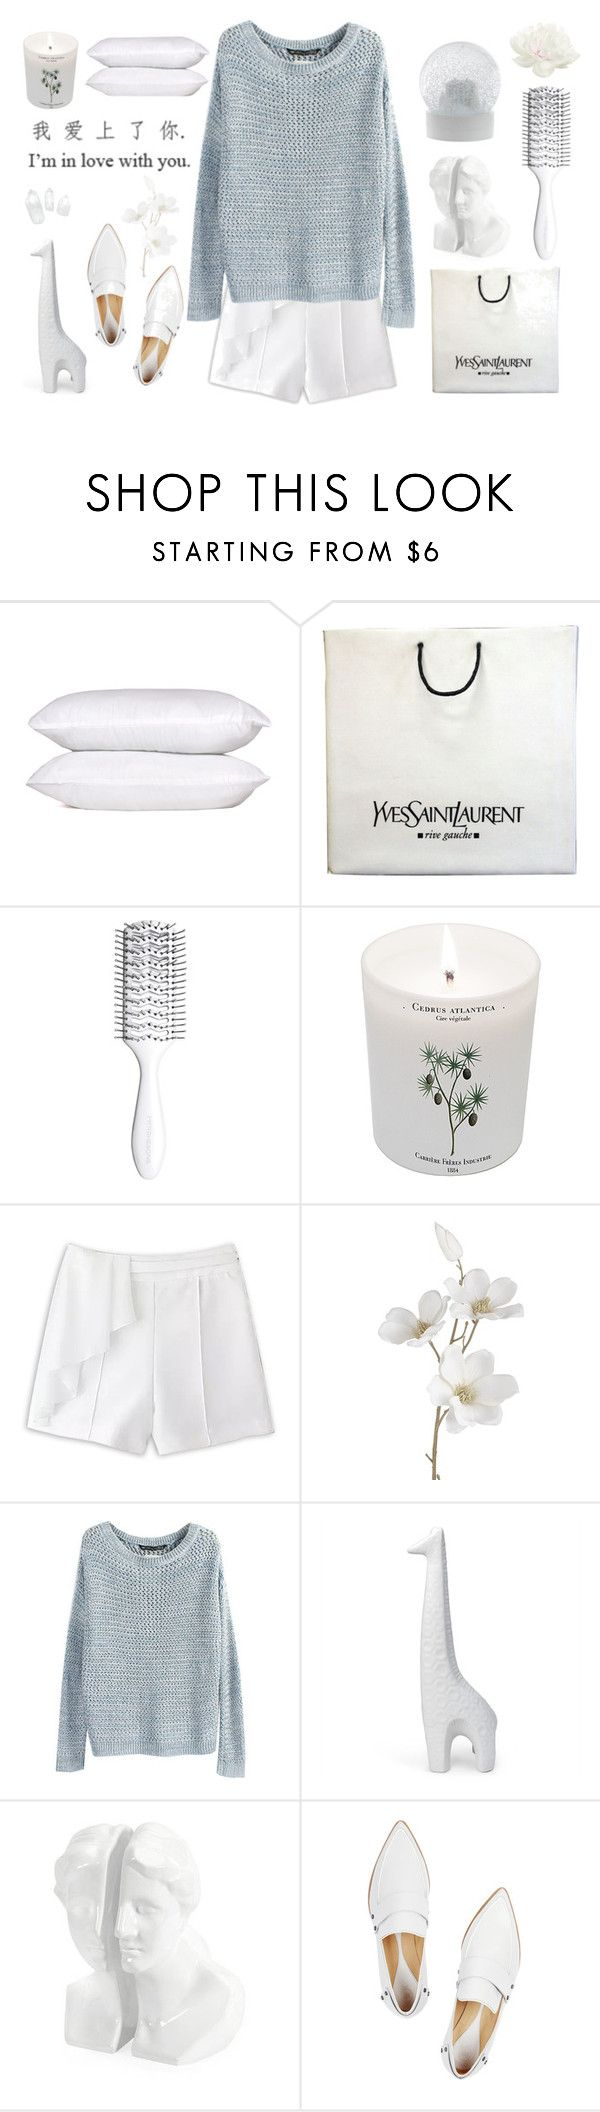 """New York Lied to Me"" by pamelagonzales ❤ liked on Polyvore featuring Yves Saint Laurent, Hershesons, Carriere, Pier 1 Imports, xO Design, Jonathan Adler, IMAX Corporation, McQ by Alexander McQueen and Wedgwood"